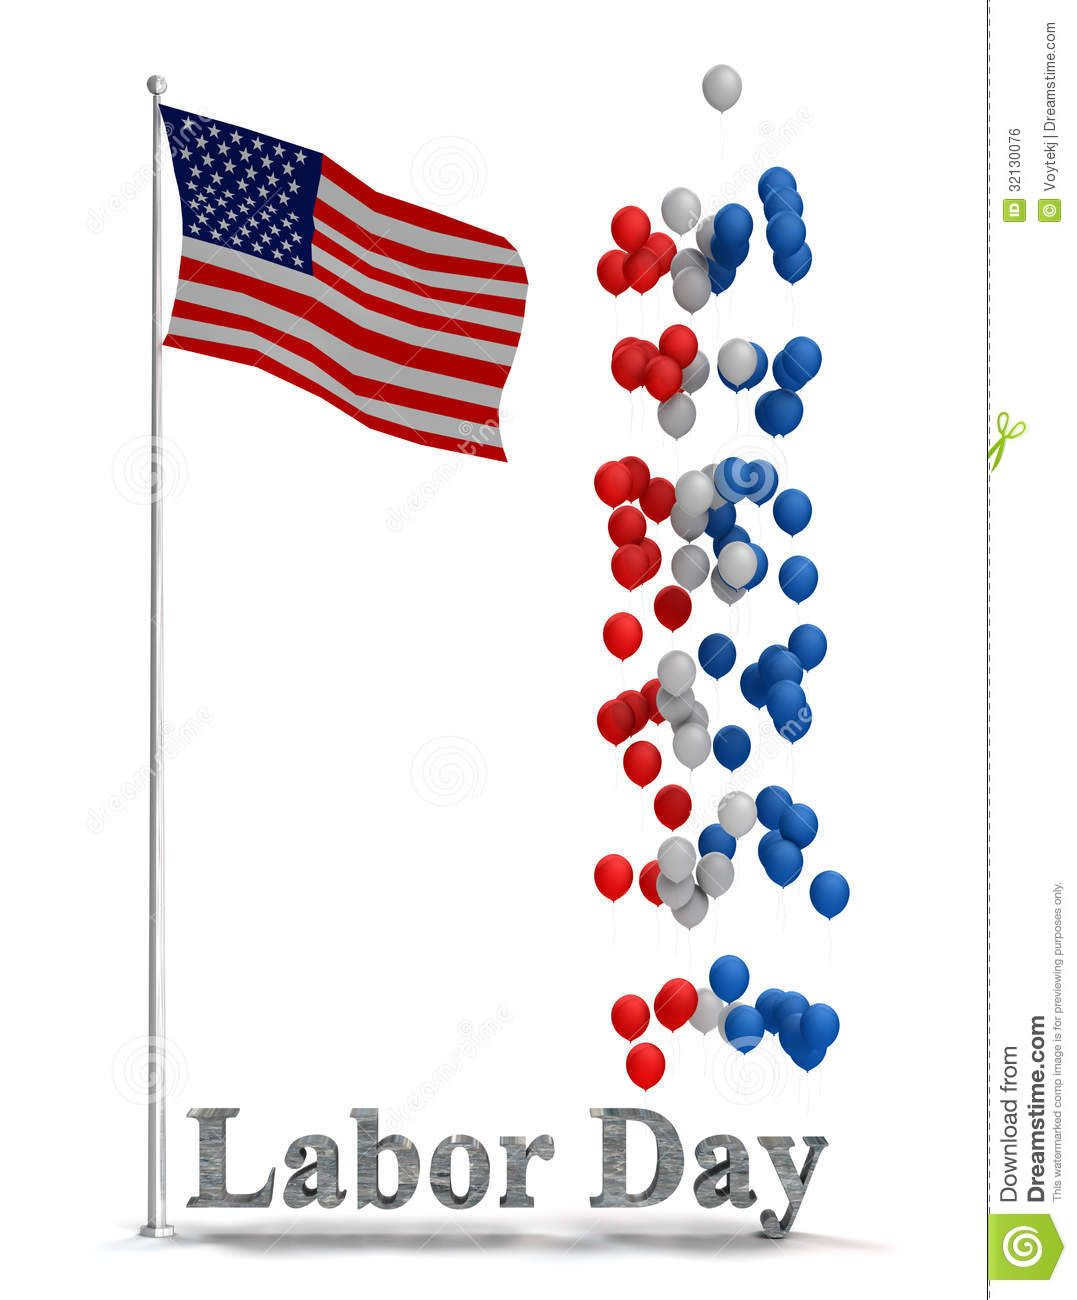 Labor Day Clipart Border 2014, Labor Day 2014 Clip art.